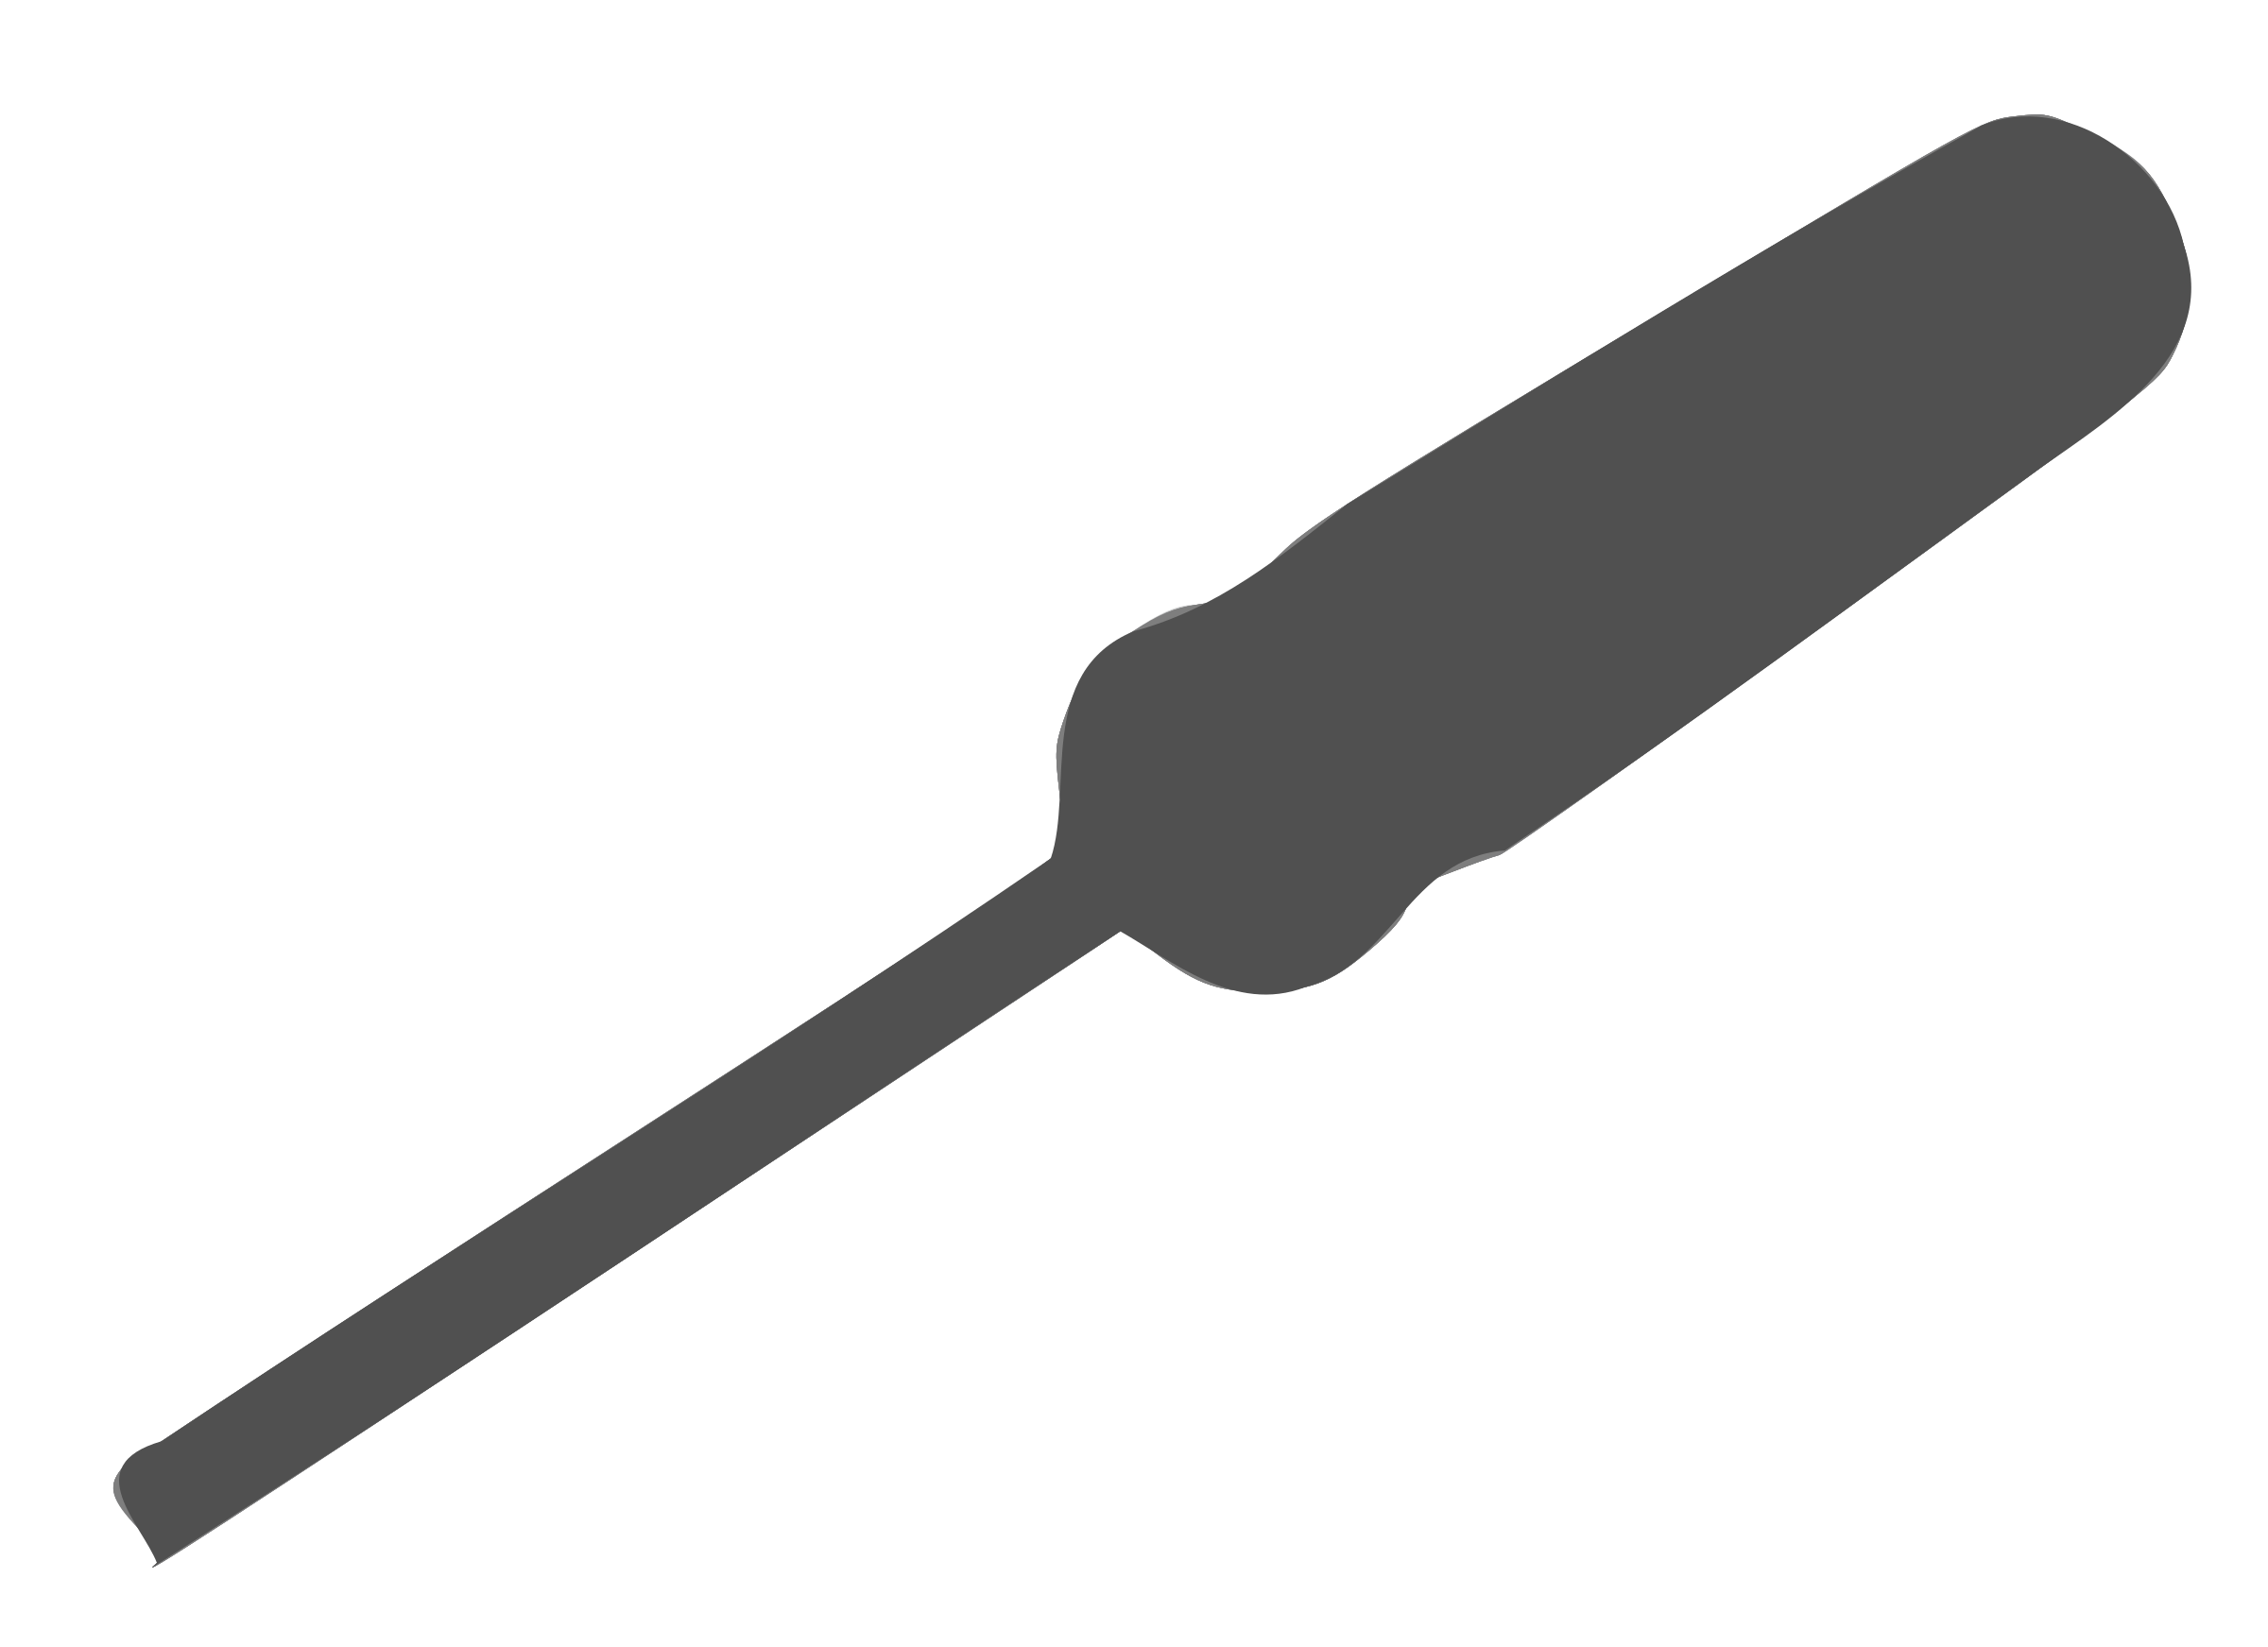 2400x1743 Silhouette Outil 06 By @jlouis, Silhouette Of Screwdriver